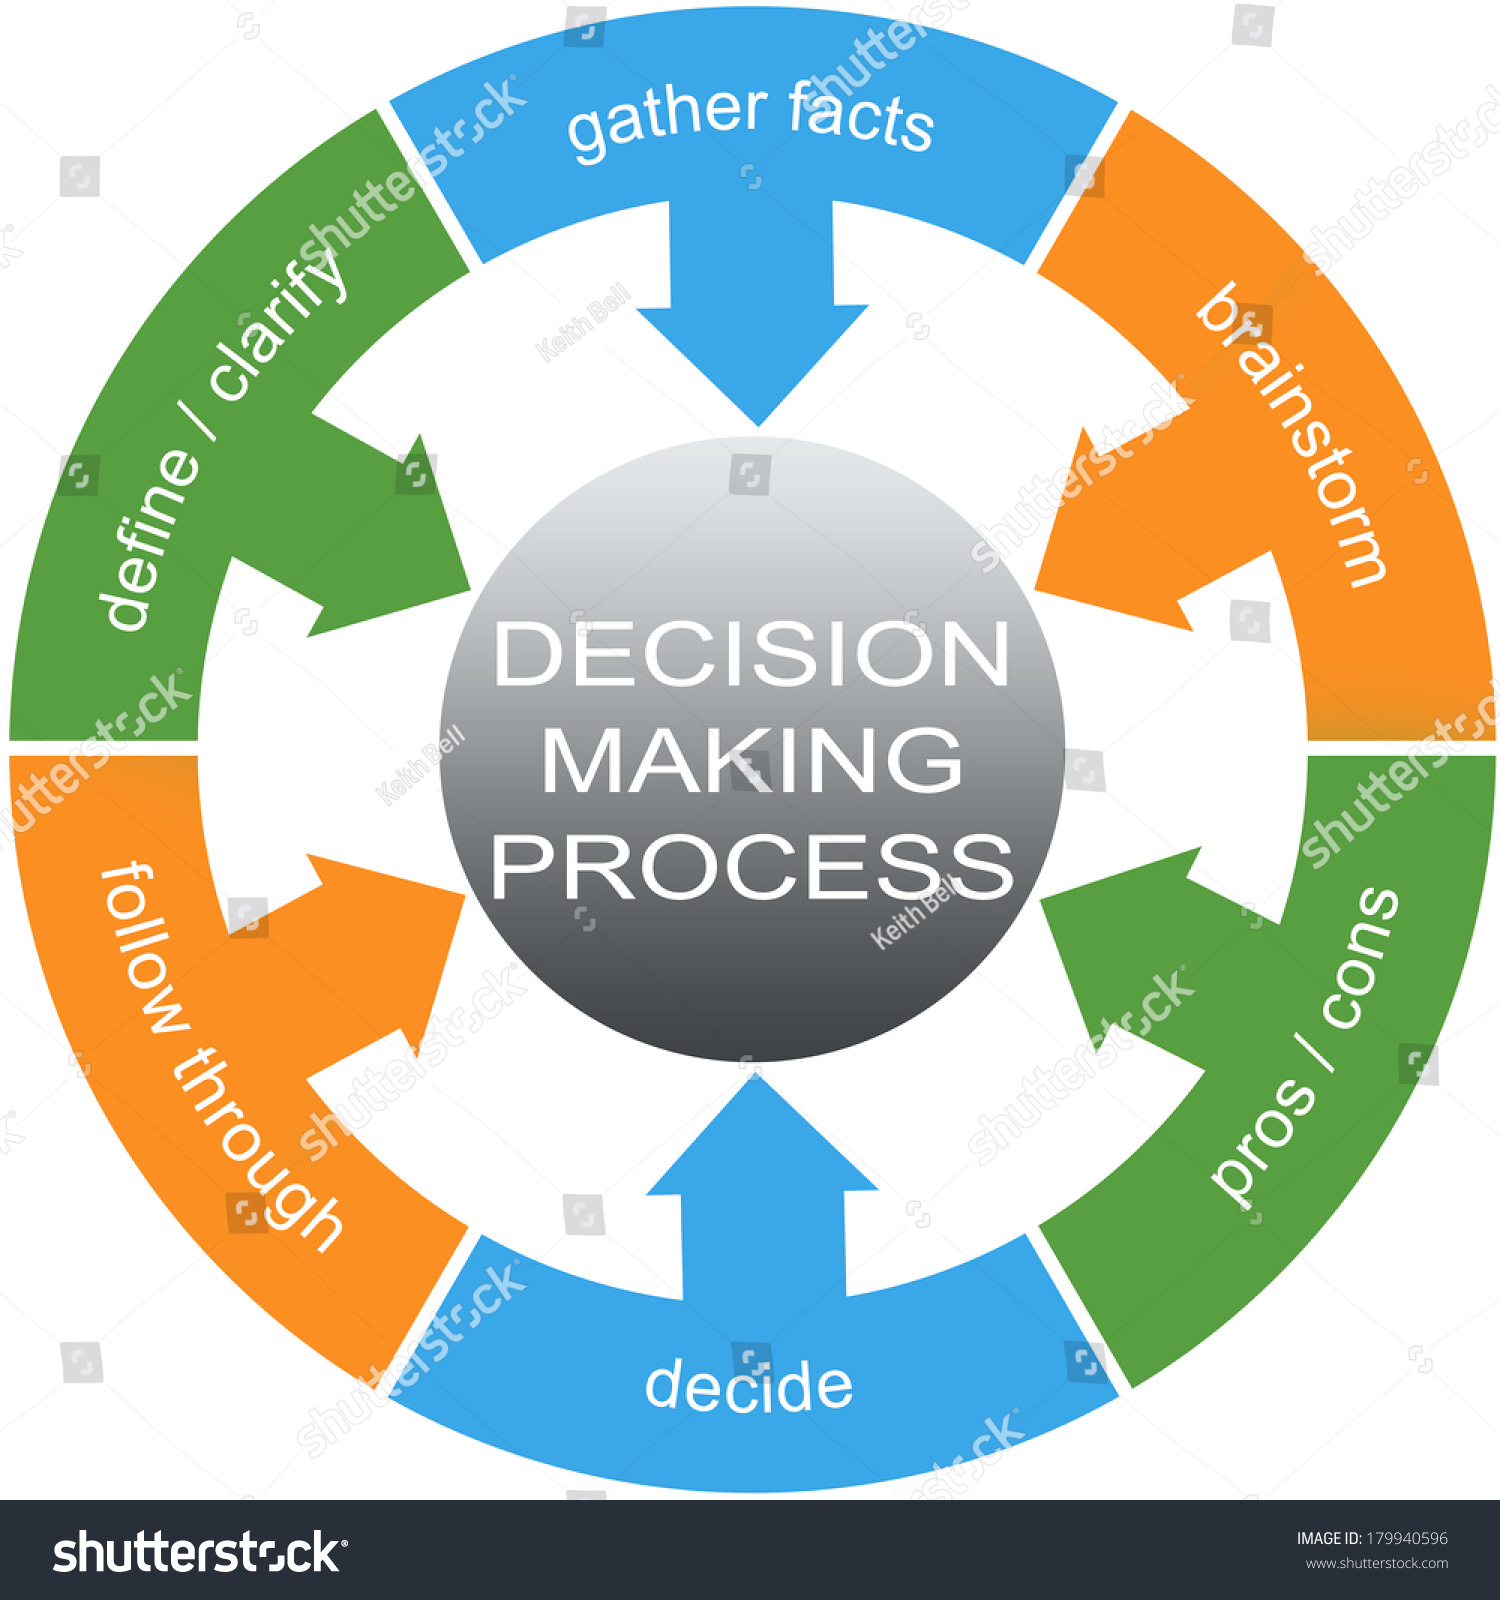 Decision Making Process Word Circles Concept Stock